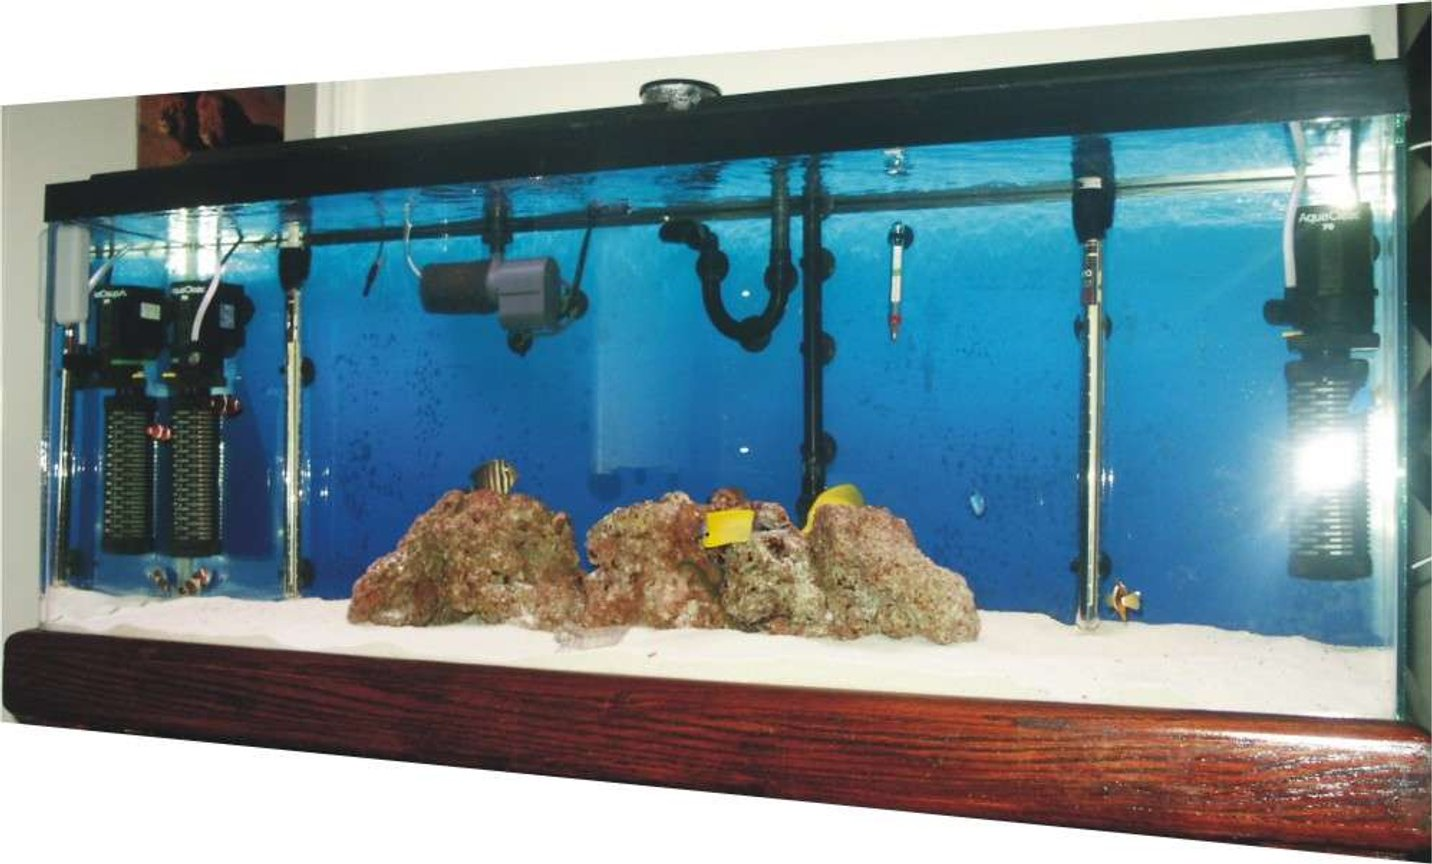 55 gallons saltwater fish tank (mostly fish, little/no live coral) - My tank is about 48x18x13 Currently I'm running a Cascade Canister Model-1000 a Sea Clone-150-Protein Skimmer 1- Coralife Turbo-Twist UV Sterilizer 2-Aqua-Clear Powerheads-(70) 2- 300-watt Hydro-Theo Submersible Heaters